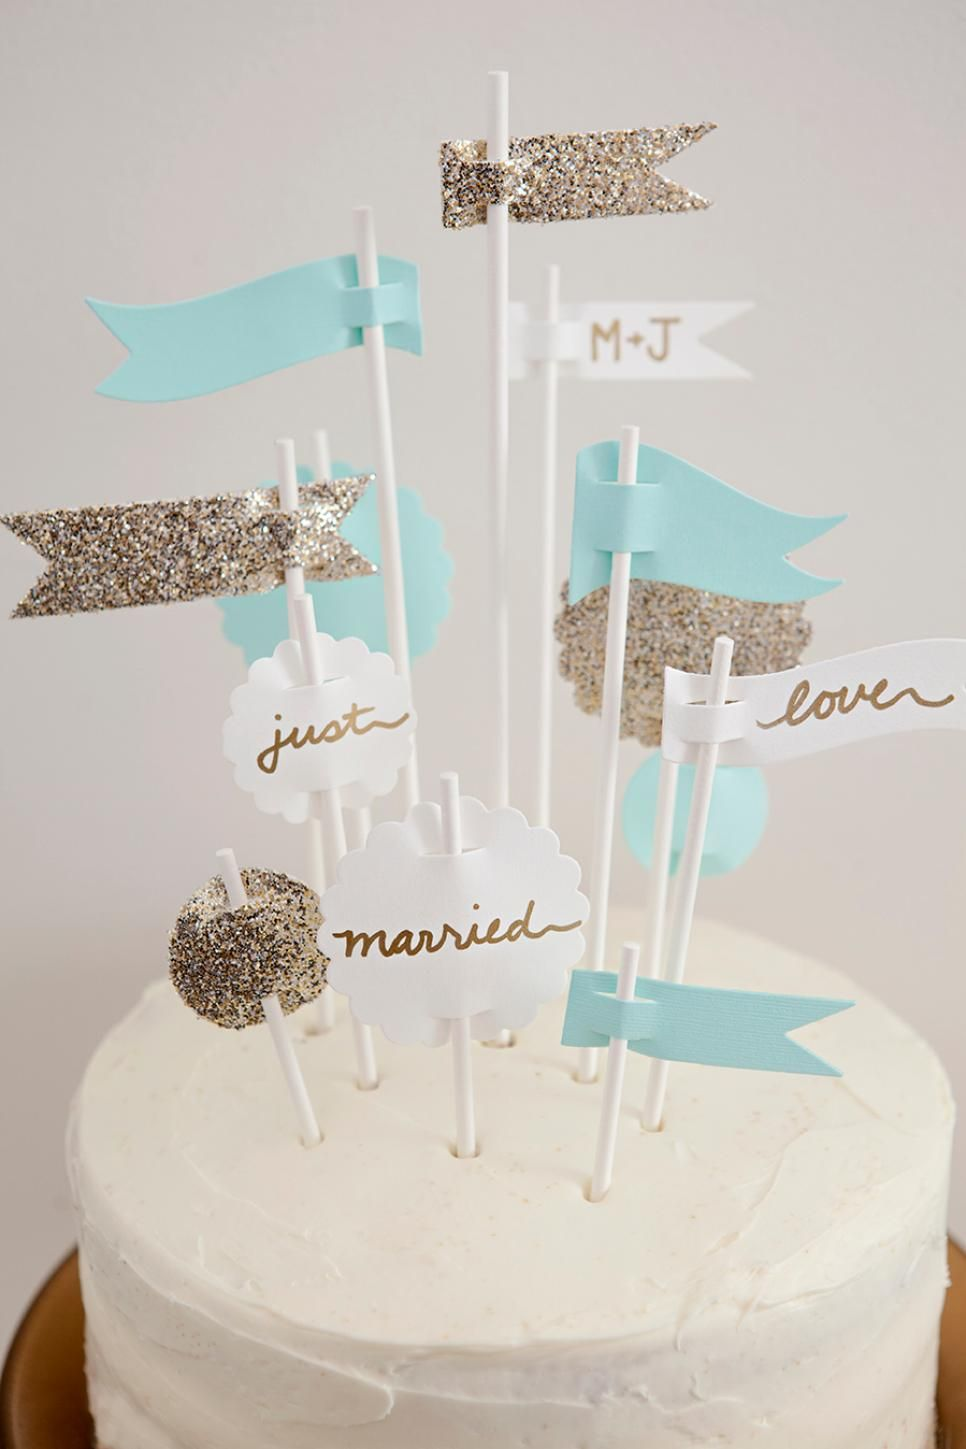 Weddings: Cake Topper Ideas and Projects | Party flags, Simple ...